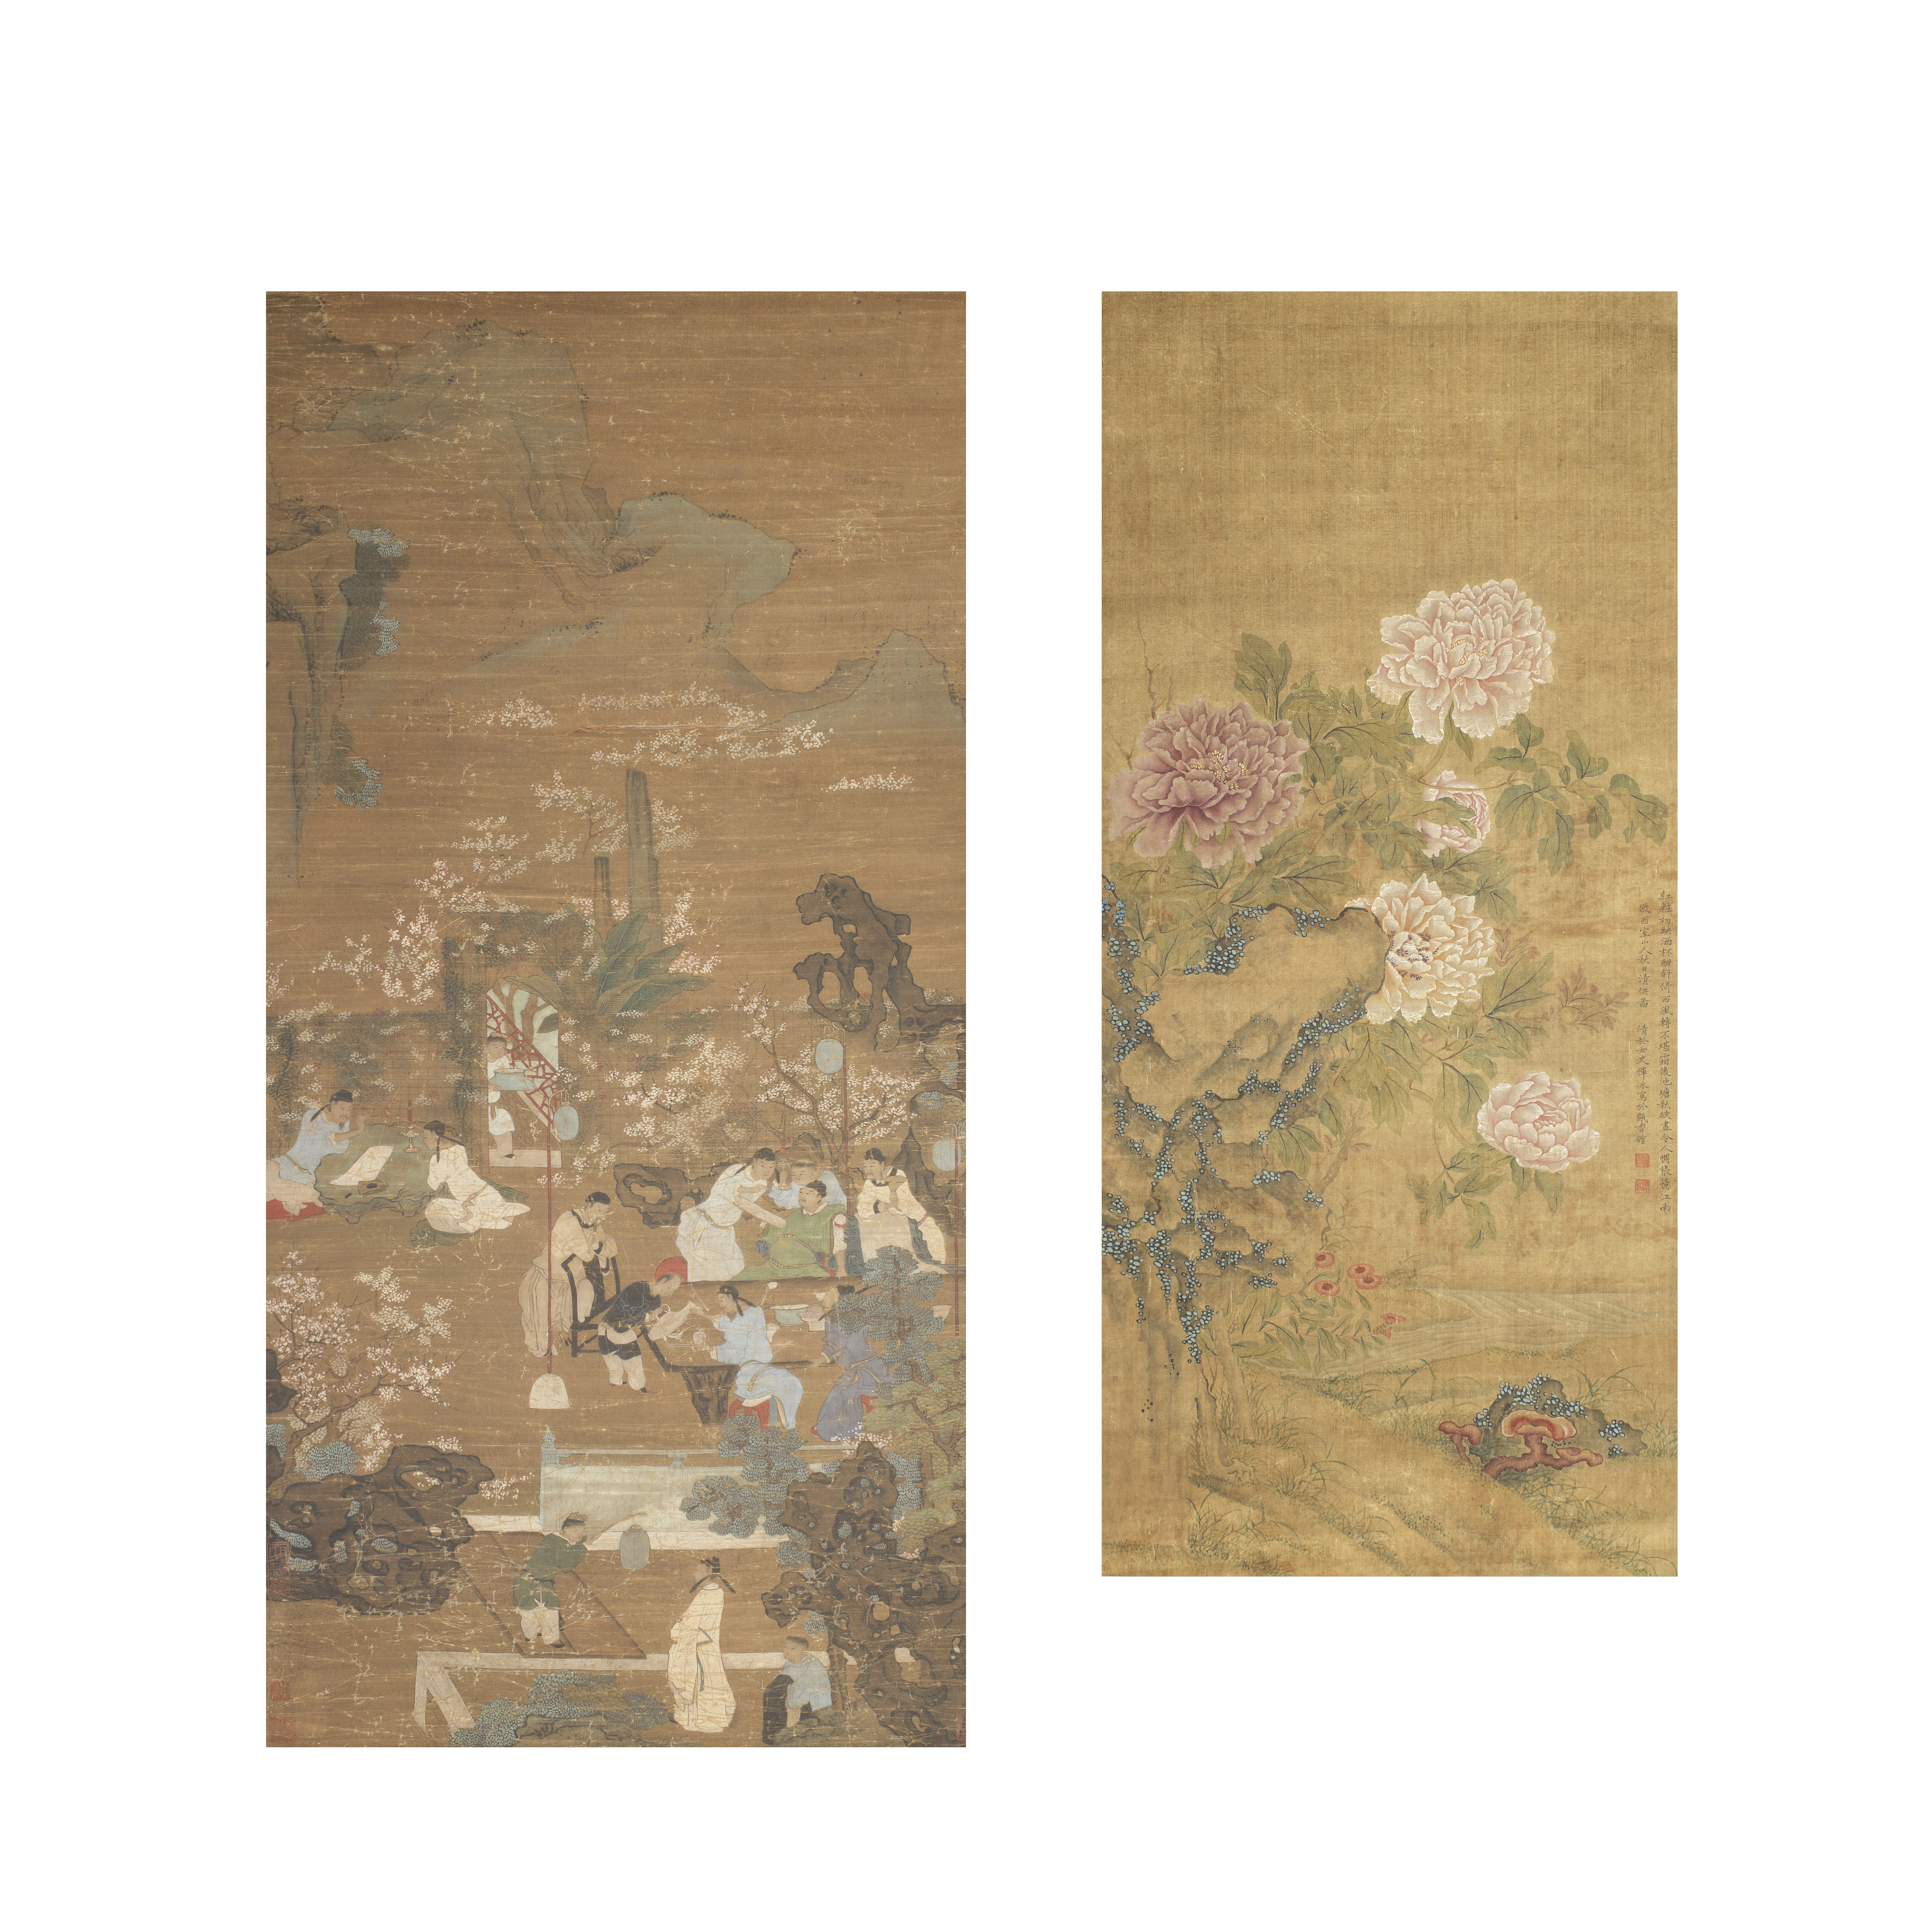 ANONYMOUS (19TH CENTURY) AND IN THE MANNER OF YUN BING (1772-1823) 'Figures in a garden setting' ...